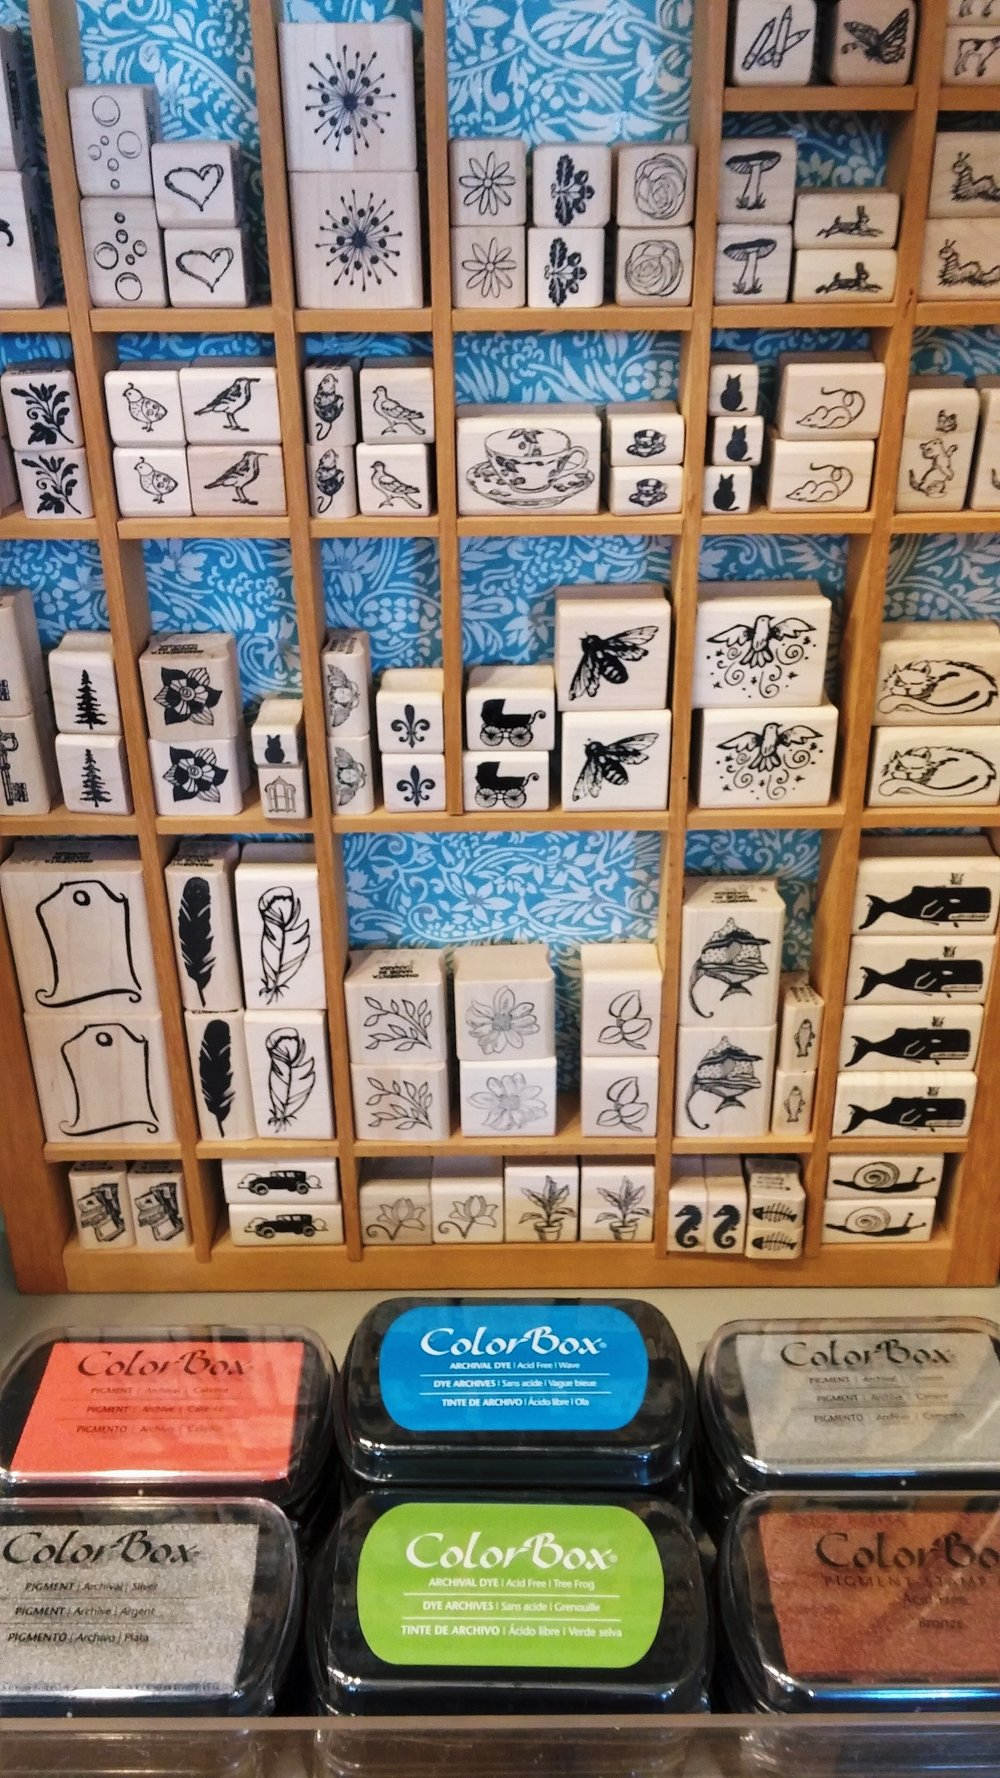 Rubber stamps and ink pads for your card-making or other creative projects.